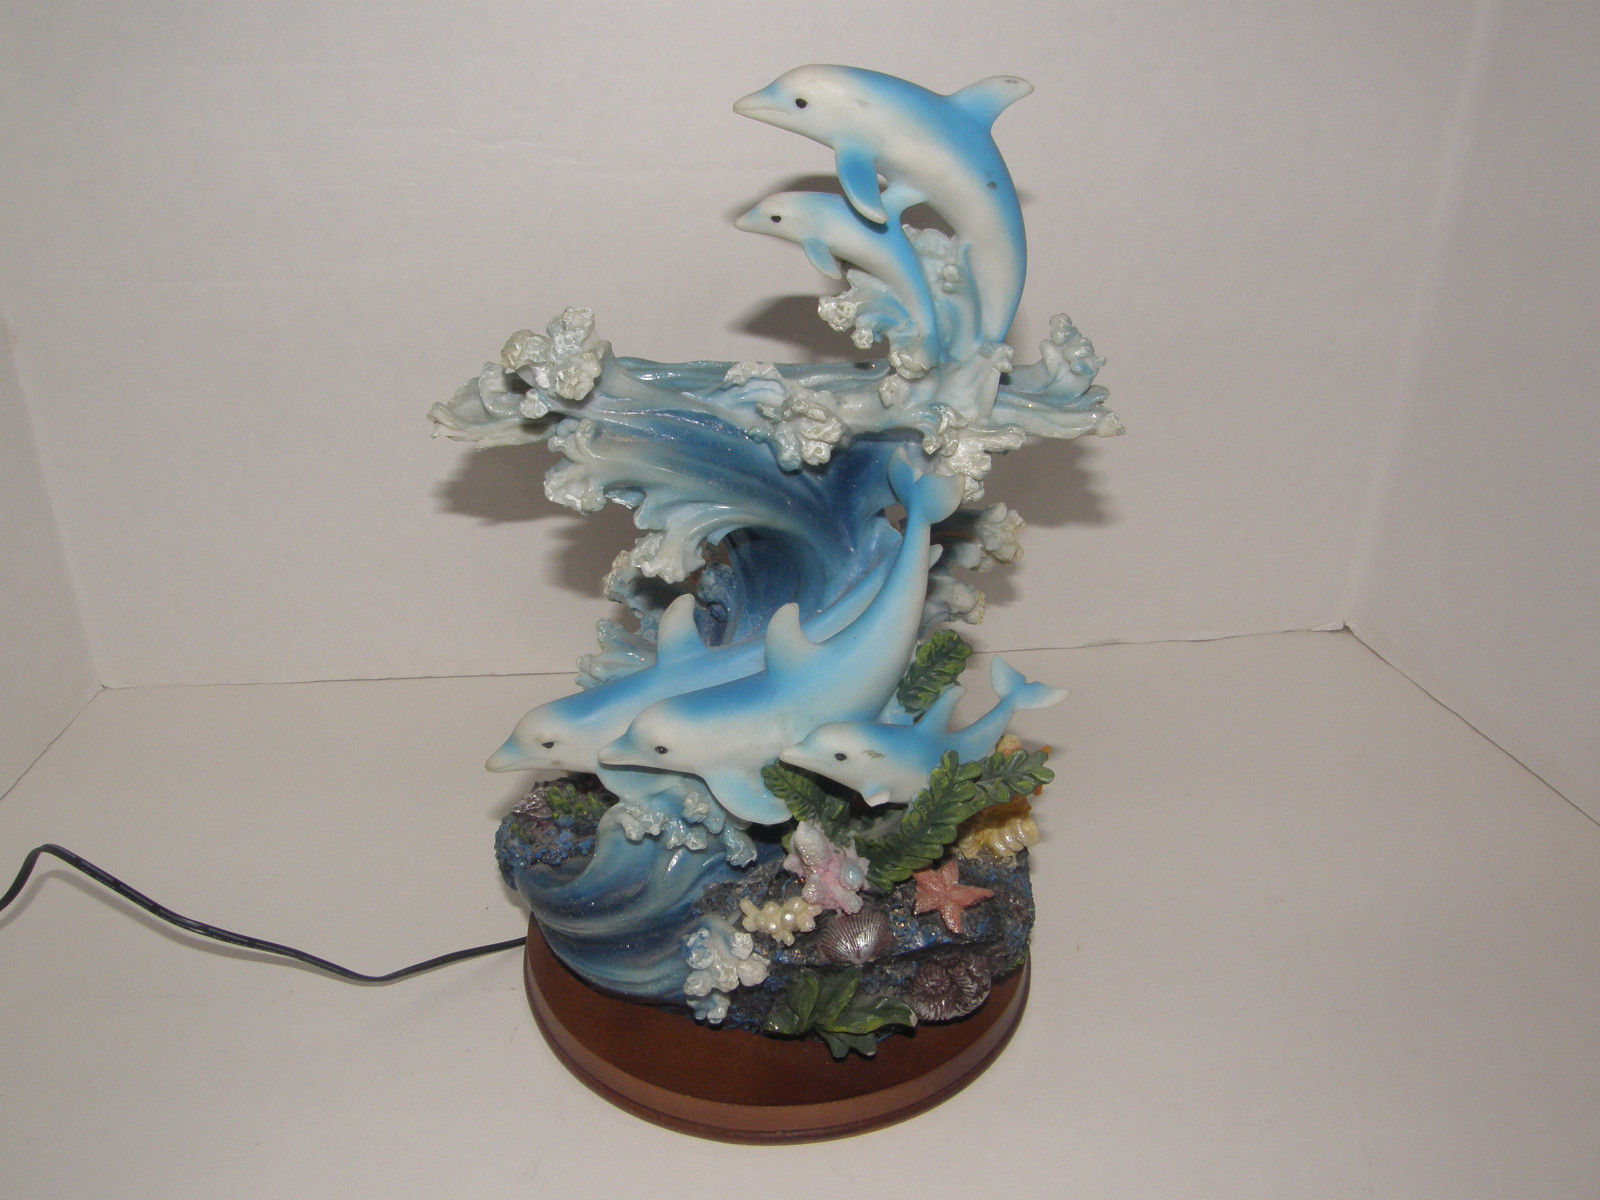 Led 5 Dolphins Coral Figurine Table Lamp and 50 similar items